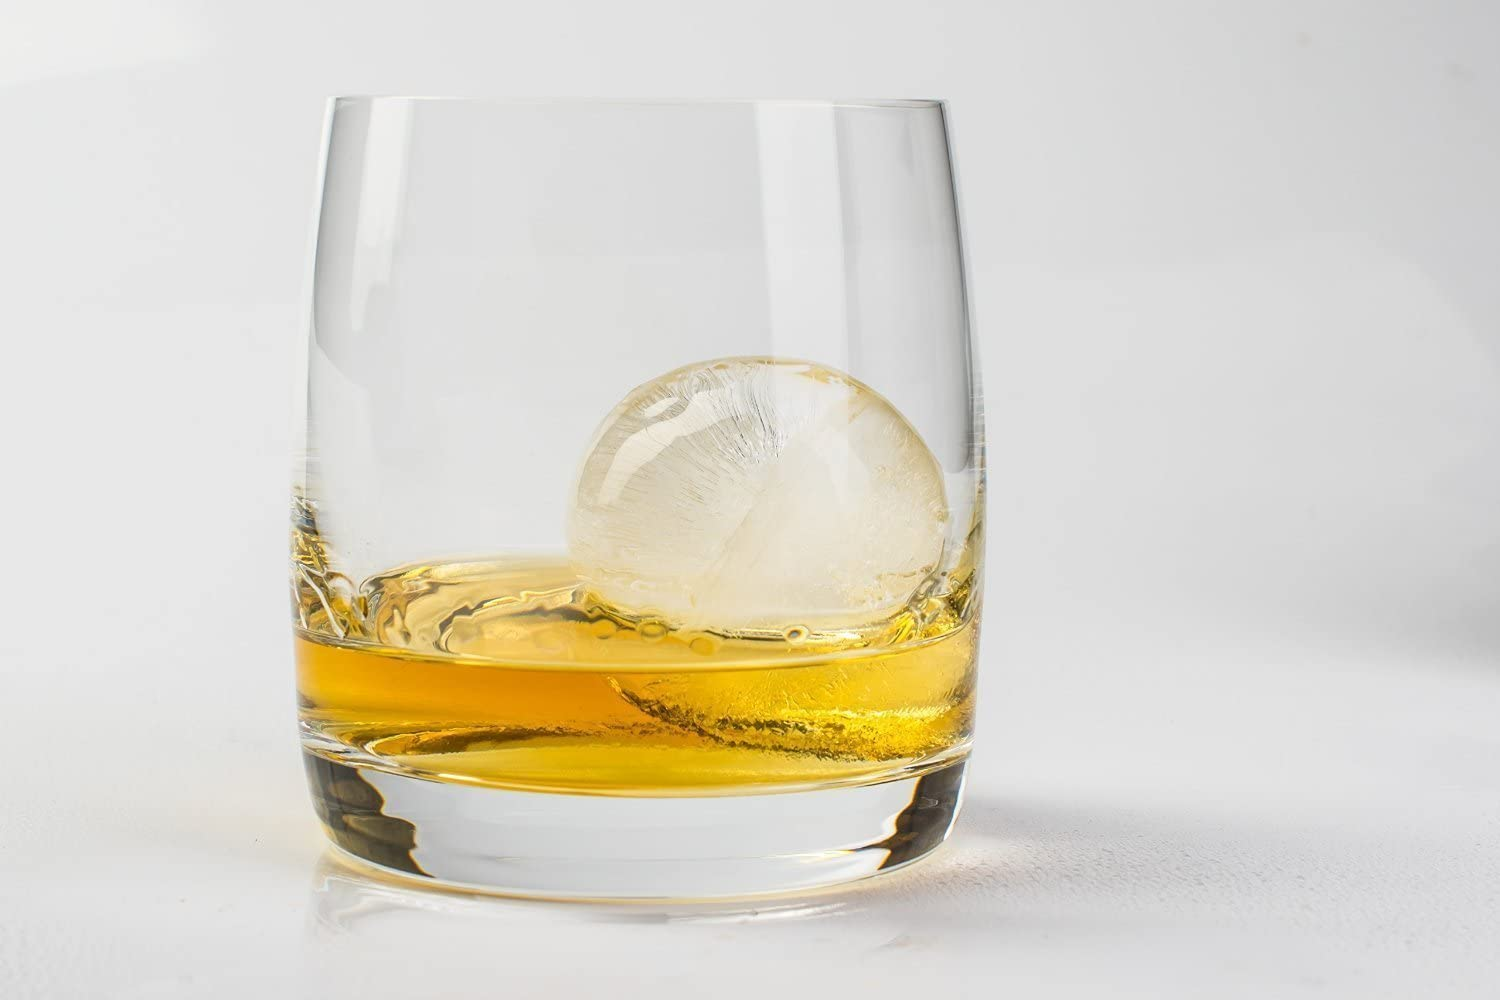 Durable Ice Ball Mould - Silicone Ice Mold Tray For High Quality Food Grade - Ultra Slow Melting Ice Sphere - Perfect For Cocktail, Whiskey, Liquor & Other Drink - Blusmart